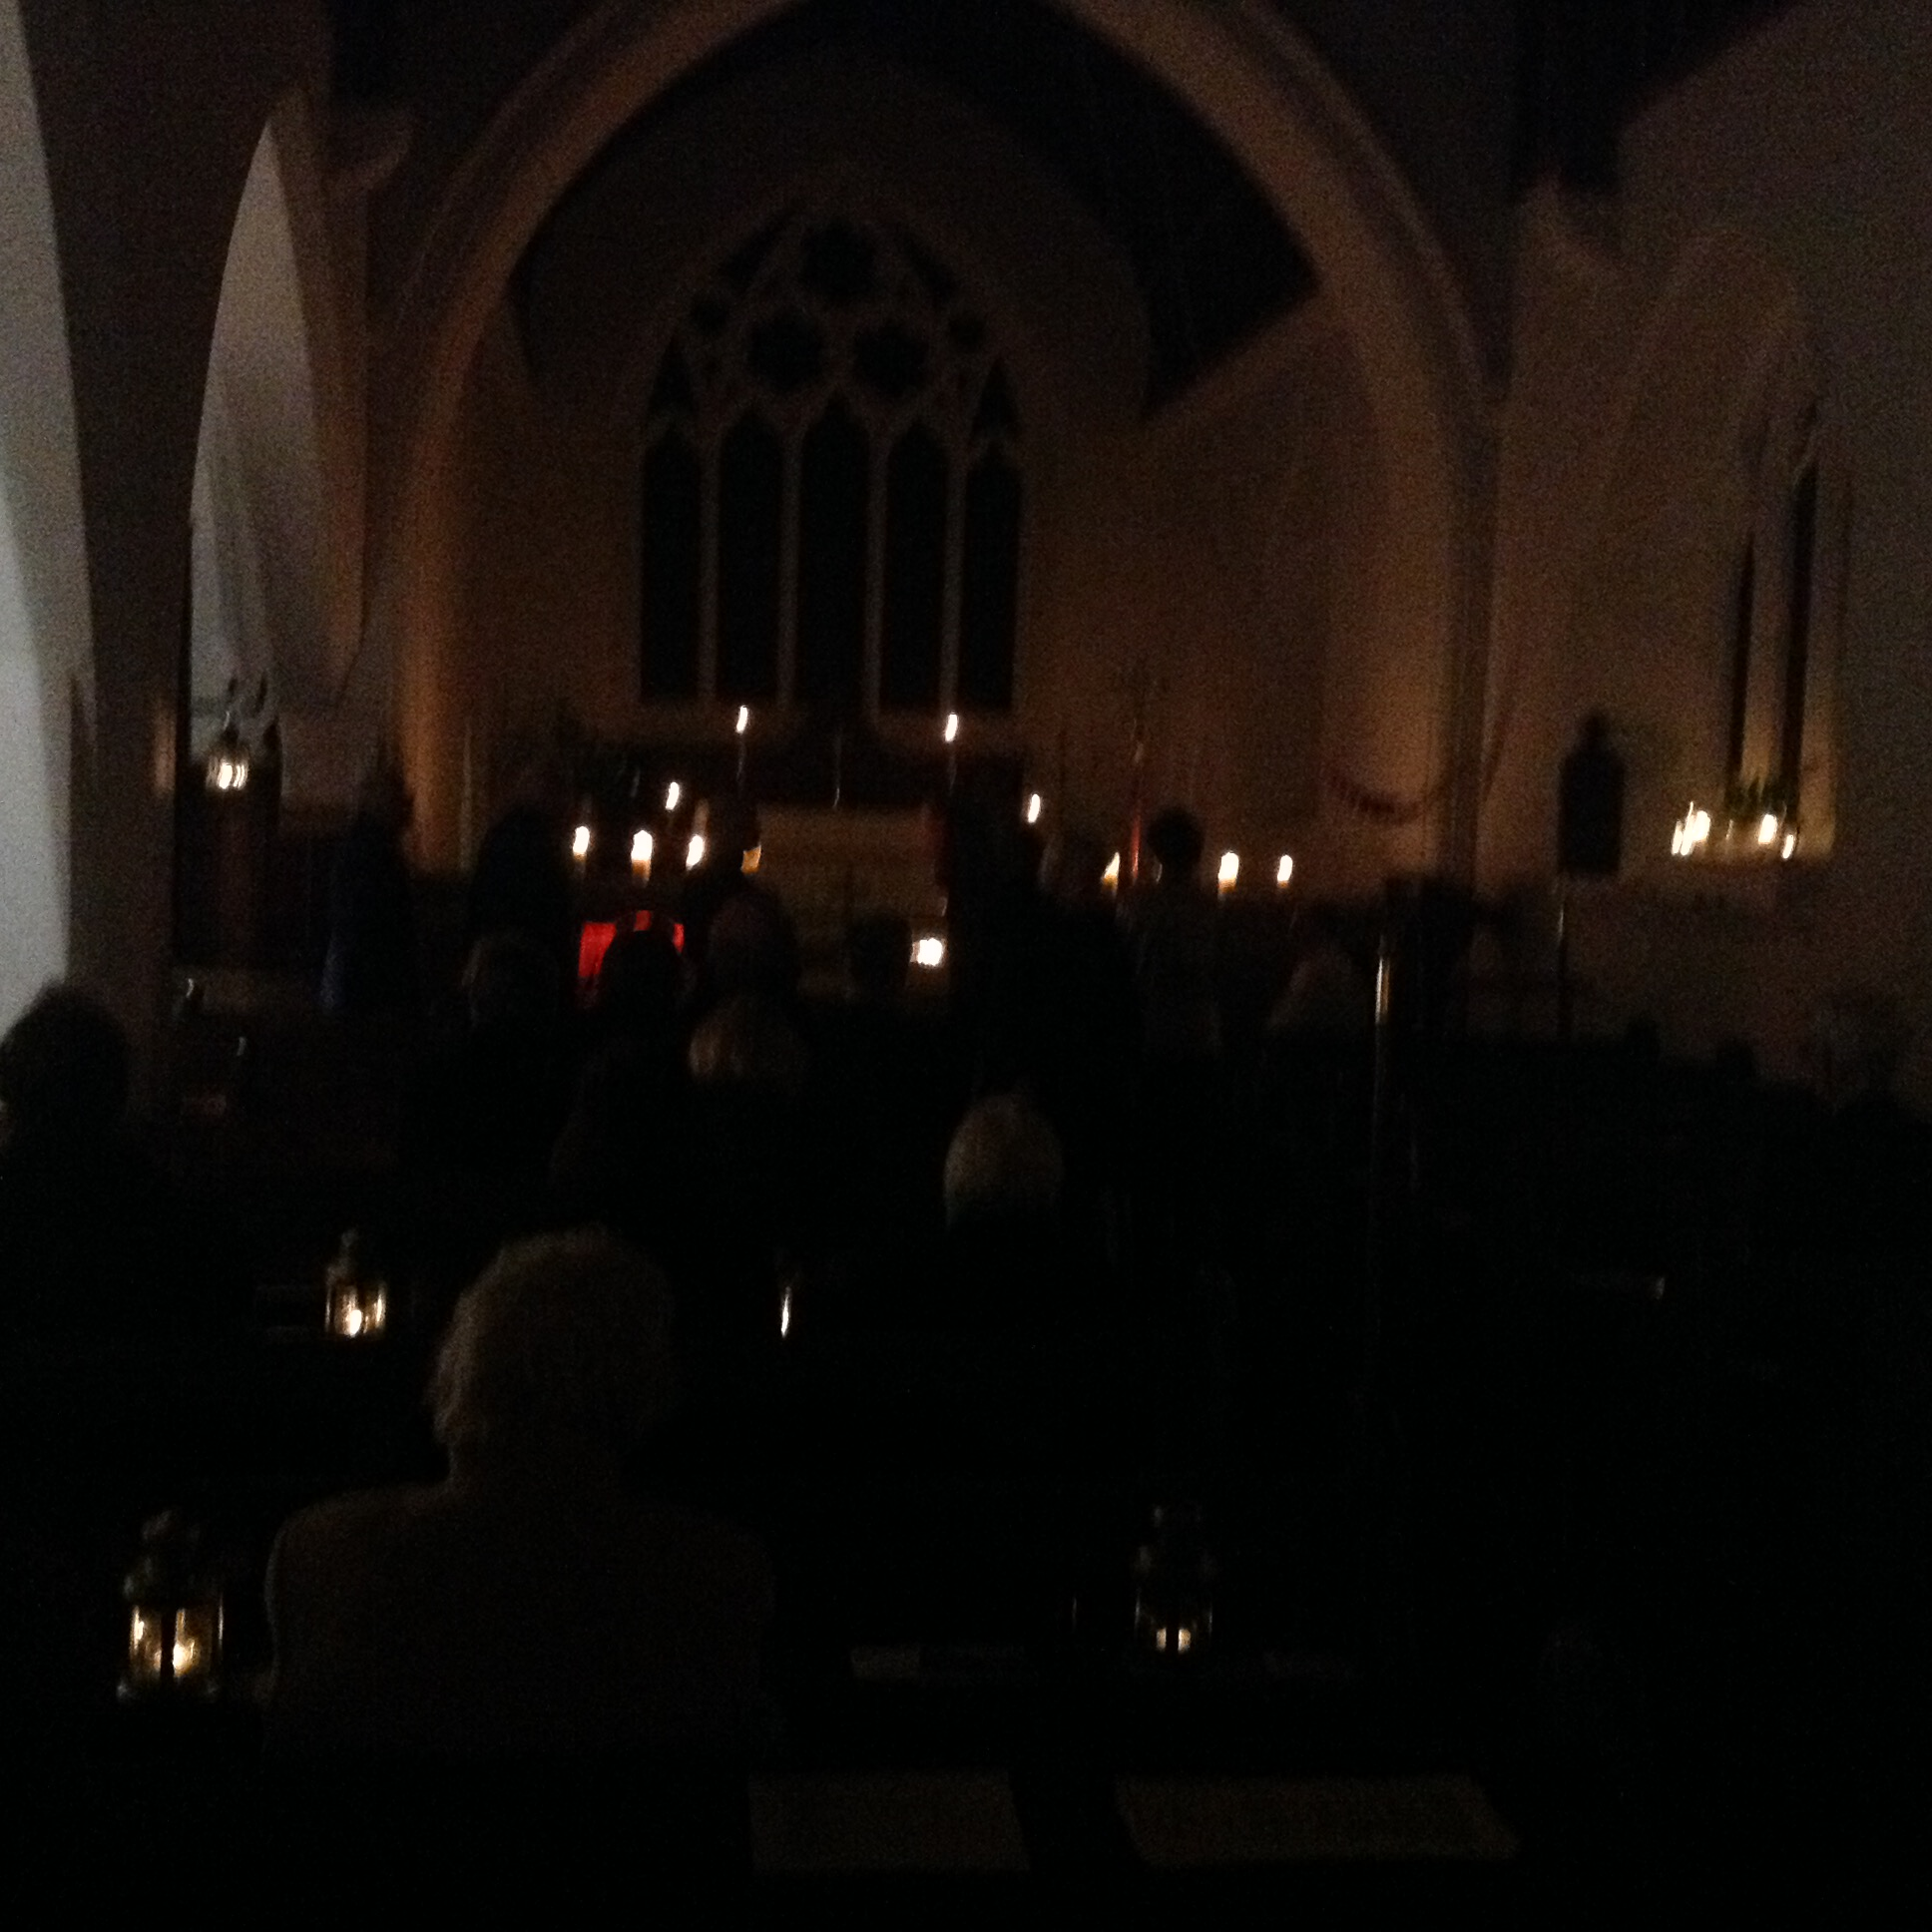 The church lit by candlelight